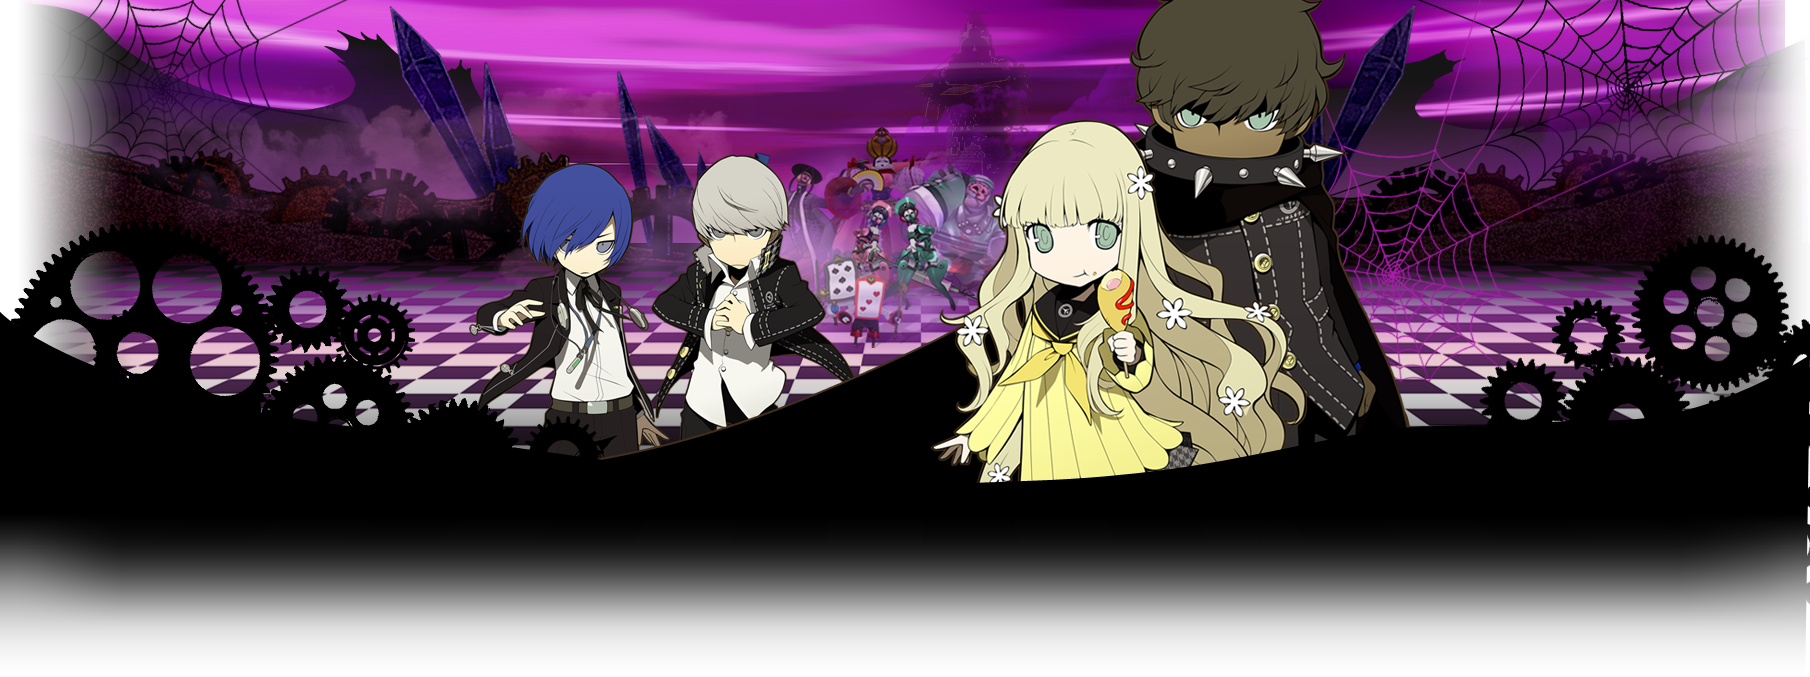 Persona Q: Shadow of the Labyrinth wallpaper